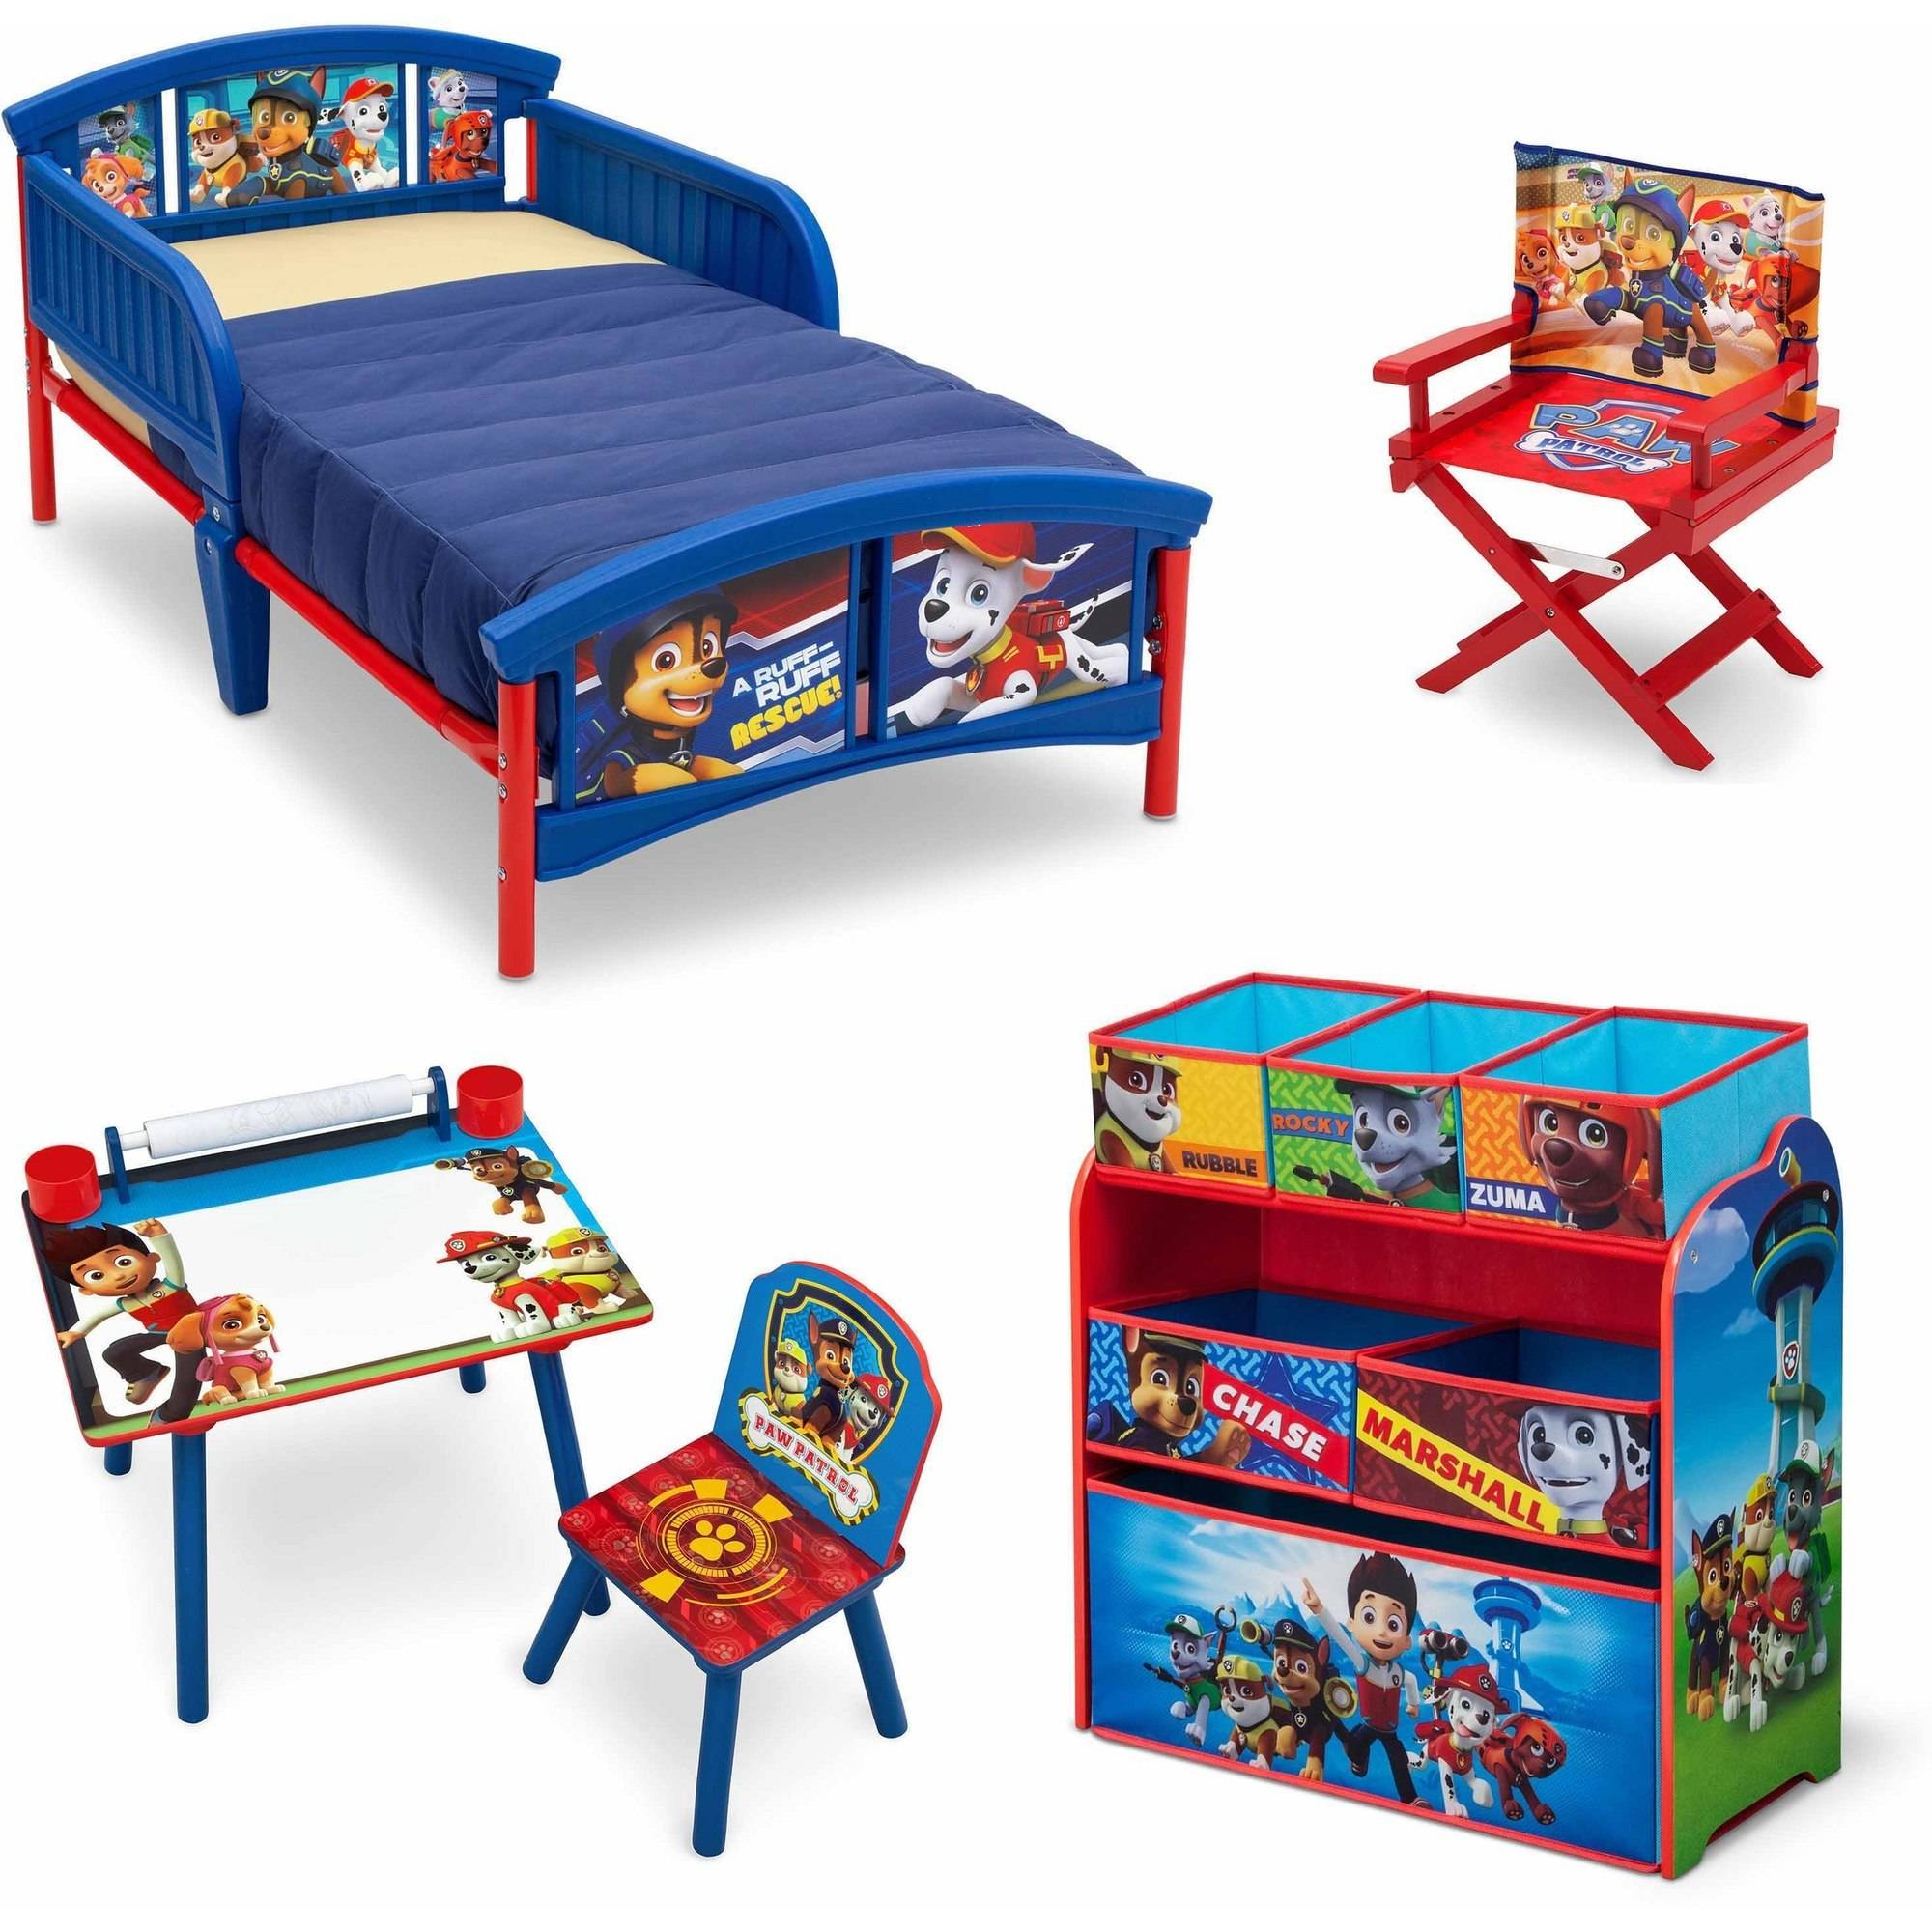 Nick Jr. PAW Patrol Room-in-a-Box with Bonus Chair